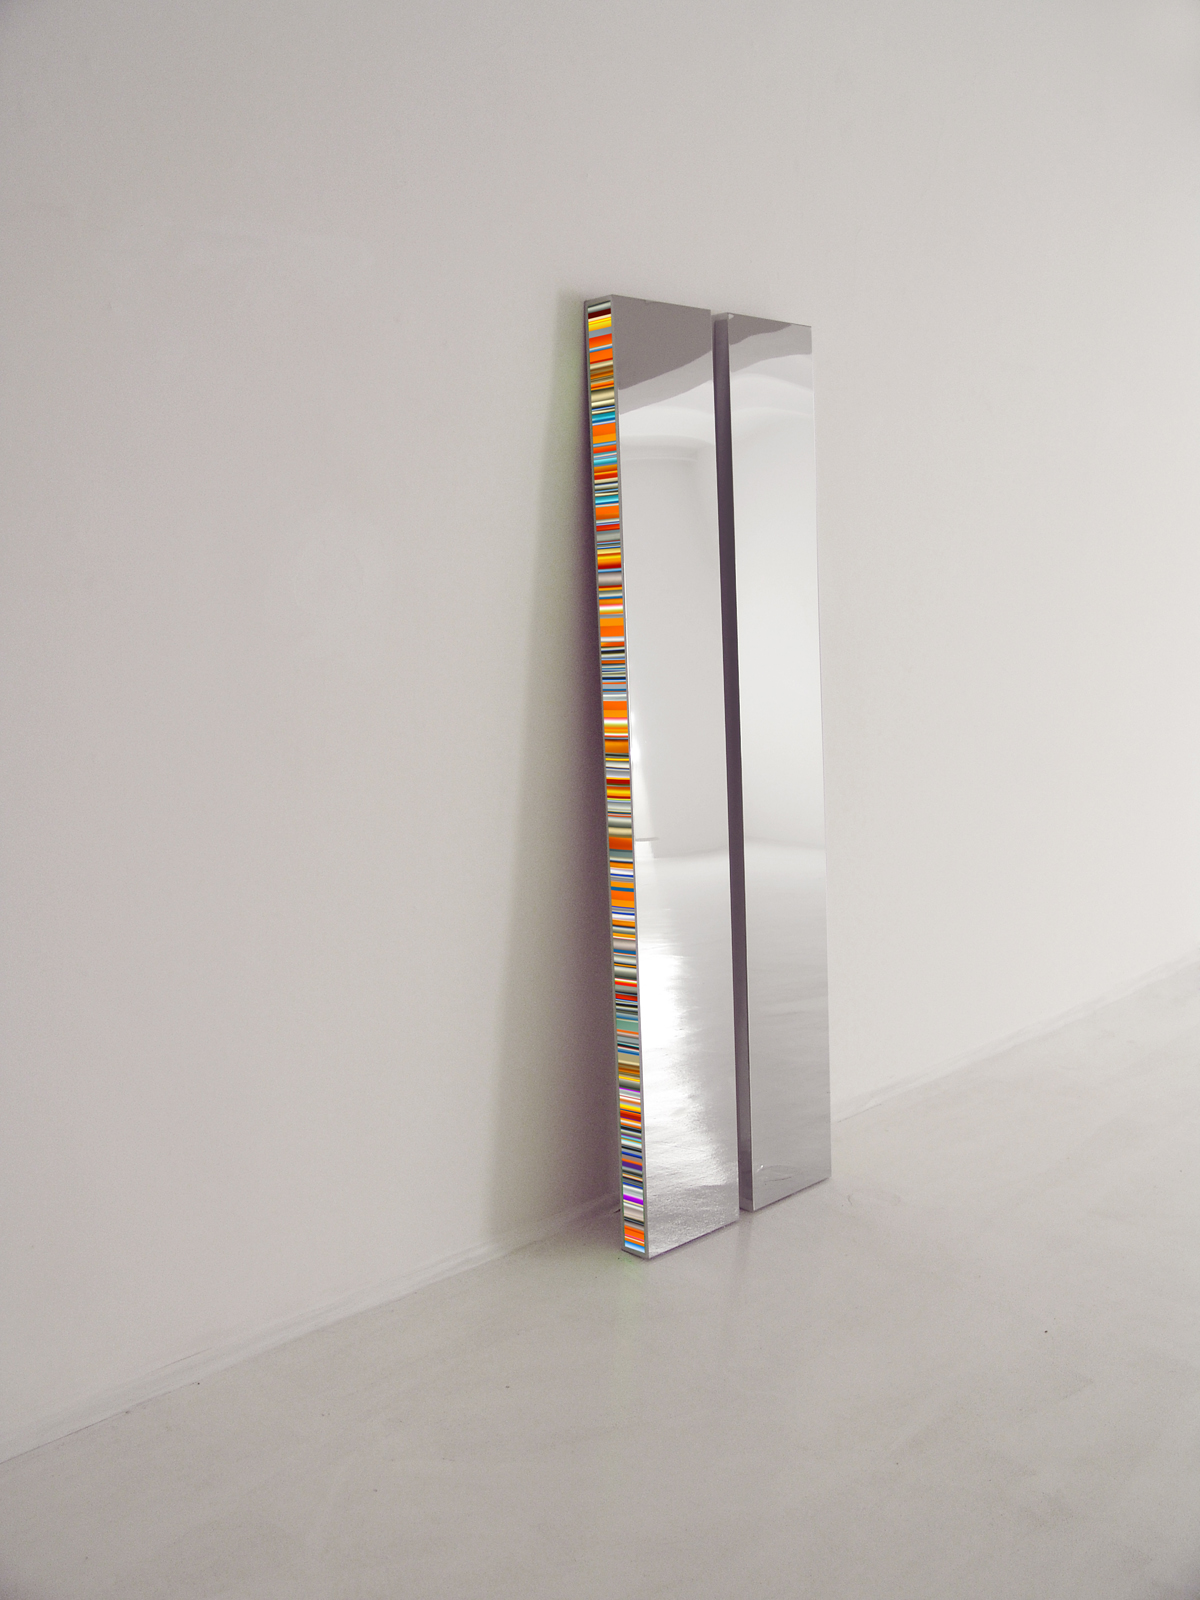 Twin (diptych), Slide on Plexiglas, stainless steel light box, LED lights (colour change) and remote control, 200 x 30 x 8 cm each, 2016